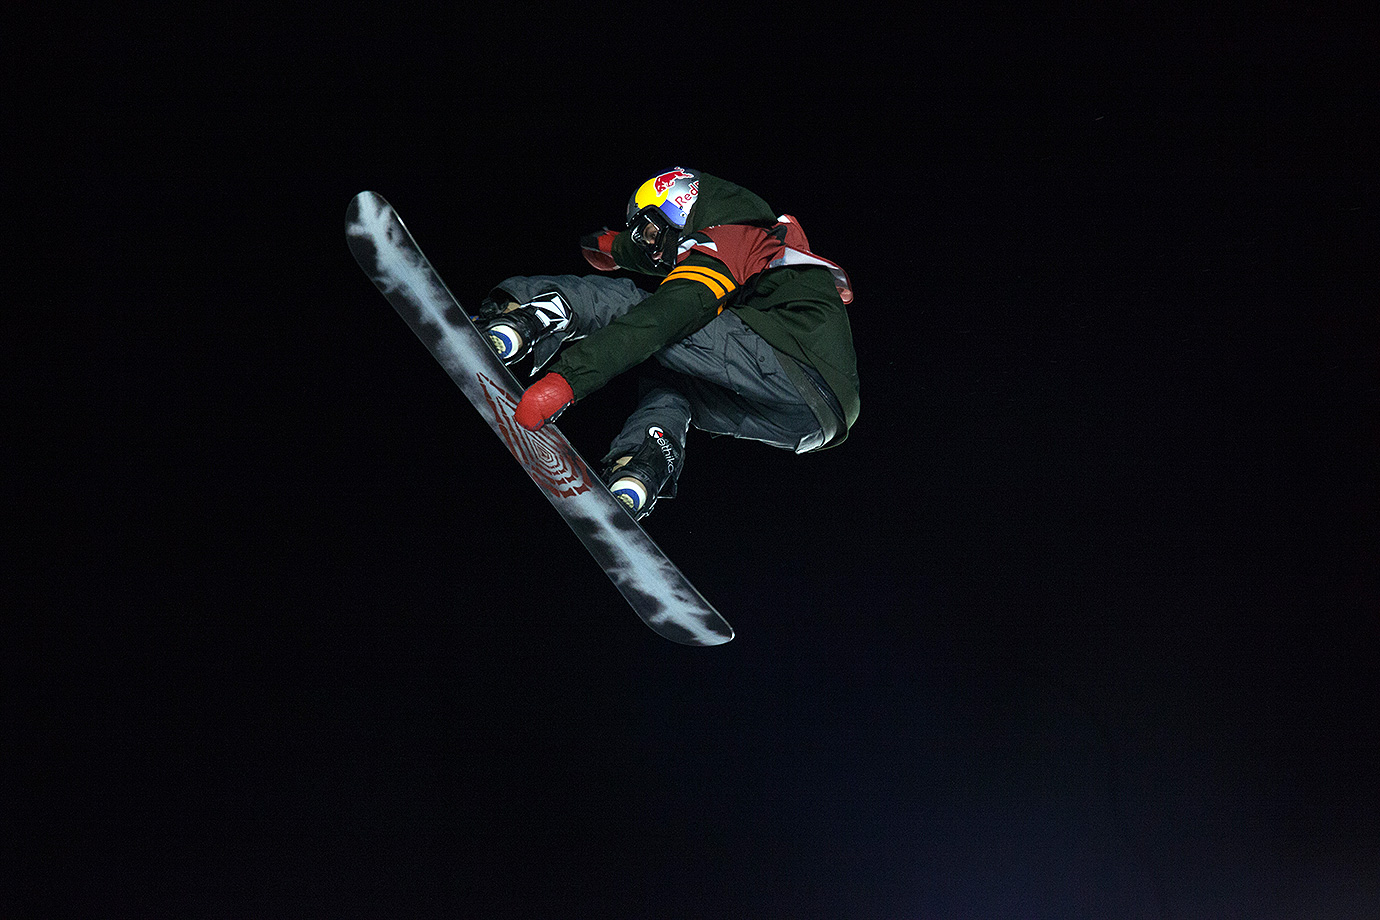 Lyon Farrell, the youngest member of the Big Air snowboard final, takes flight during the second round.